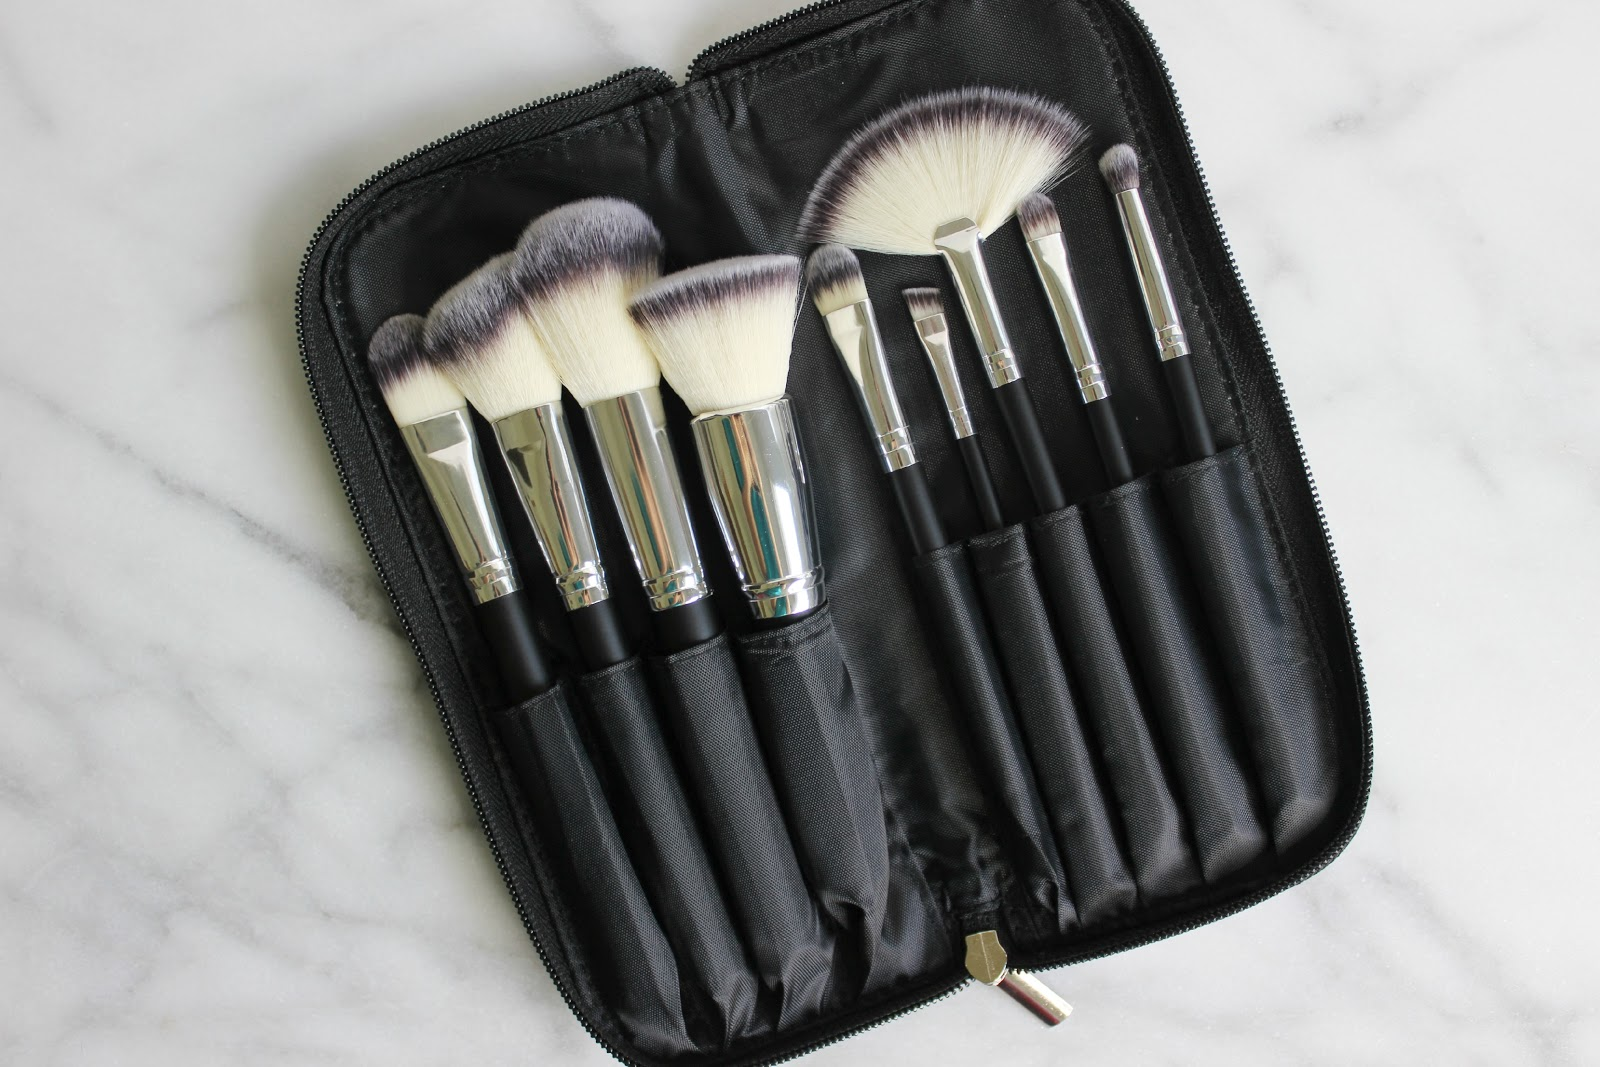 morphe brushes instagram. then my trusty daily deals website hautelook featured morphe brushes and it was as simple hitting add to cart! instagram e